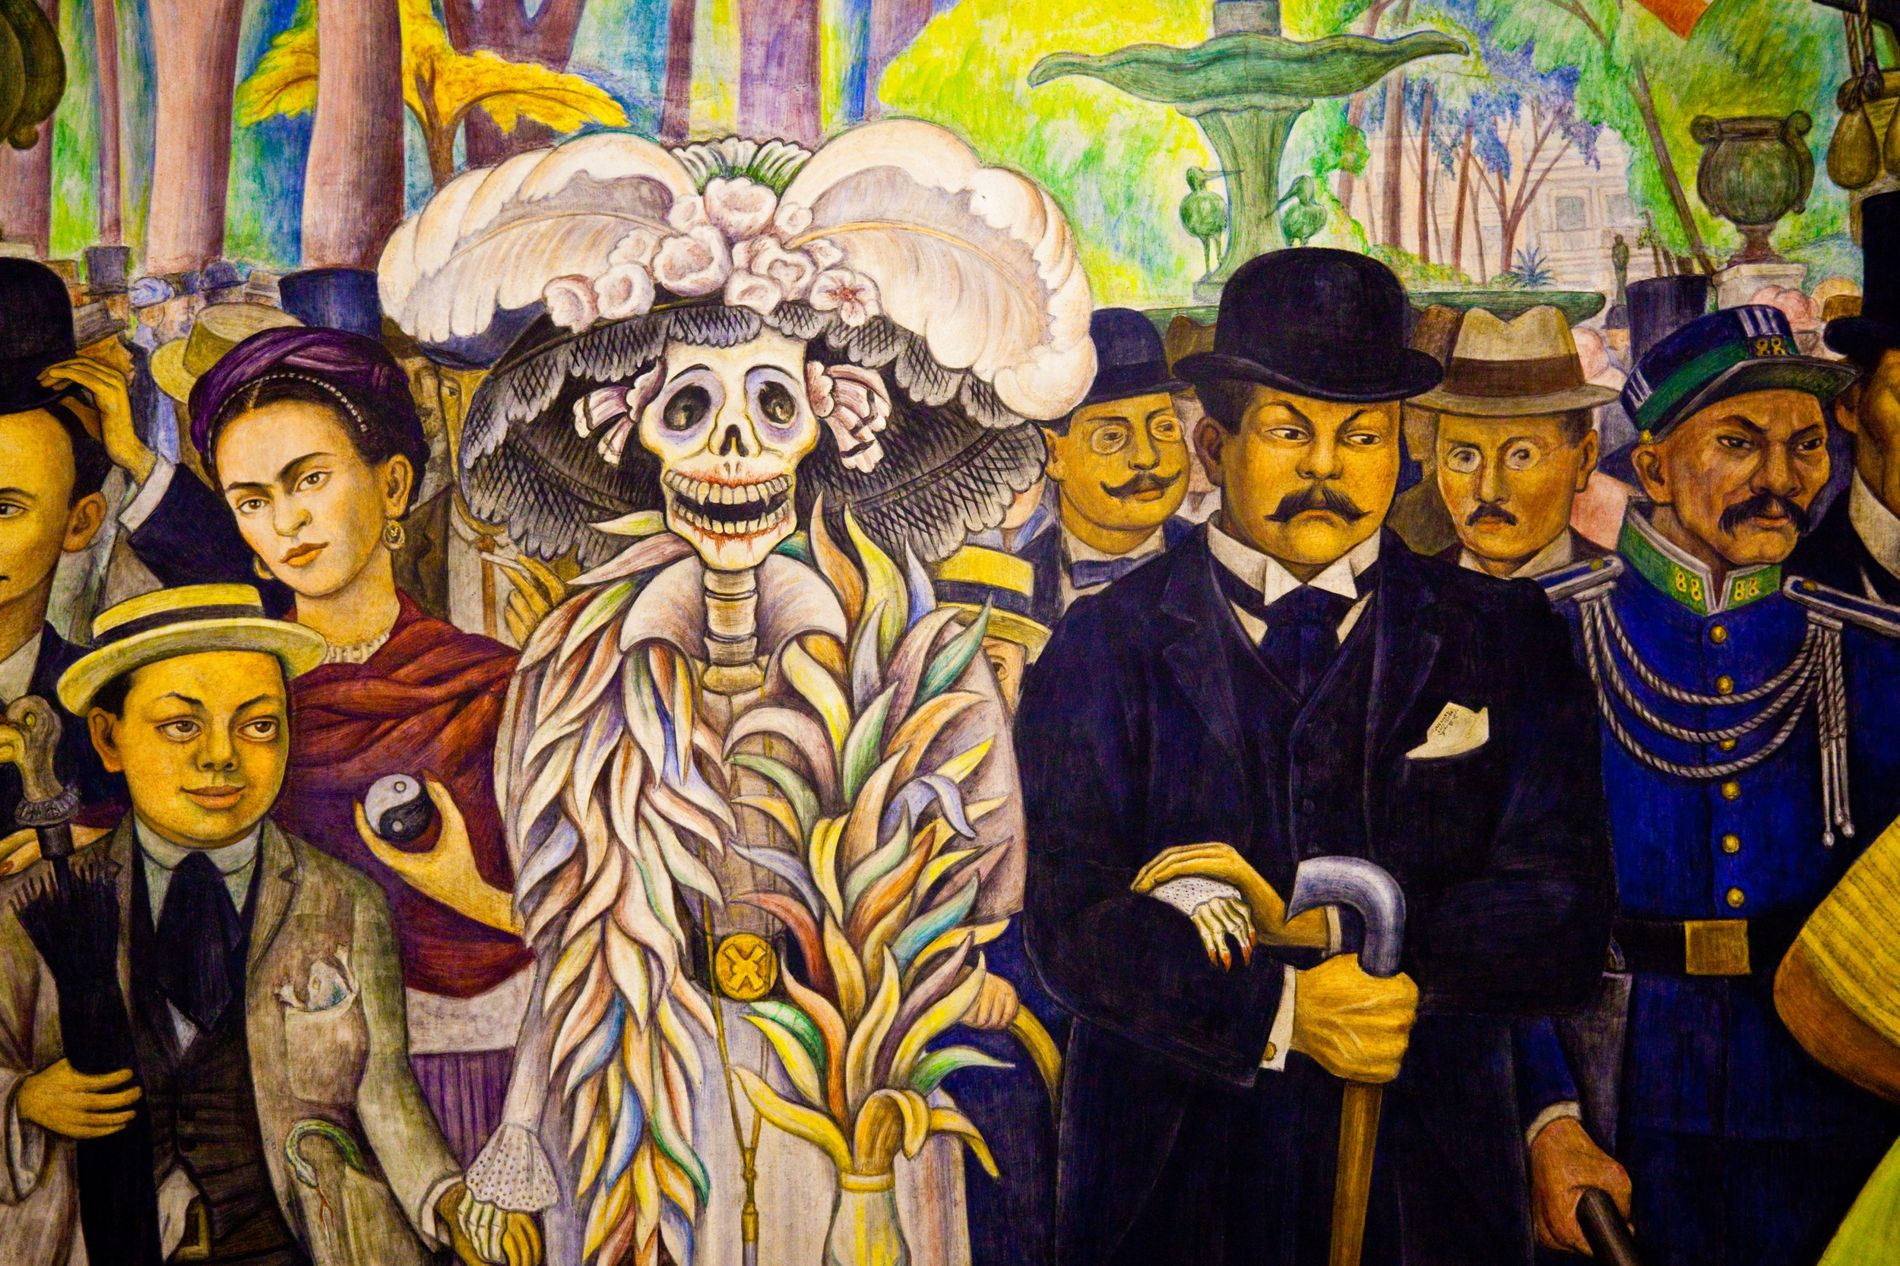 La Catrina Calavera: The dark history of Day of the Dead's immortal icon